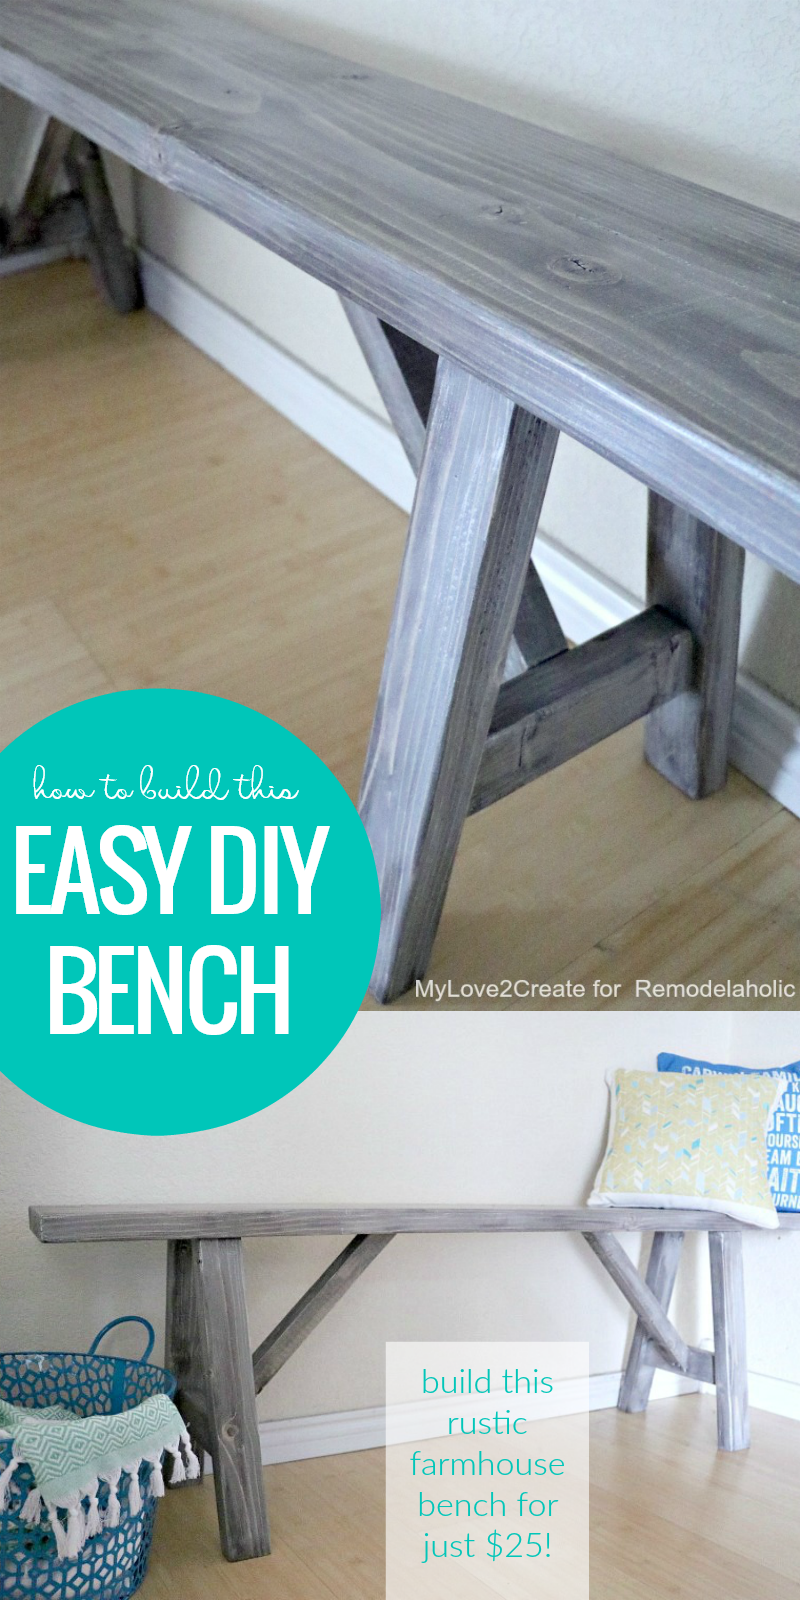 Remodelaholic how to build an easy diy bench for just 25 for Cost to build farmhouse